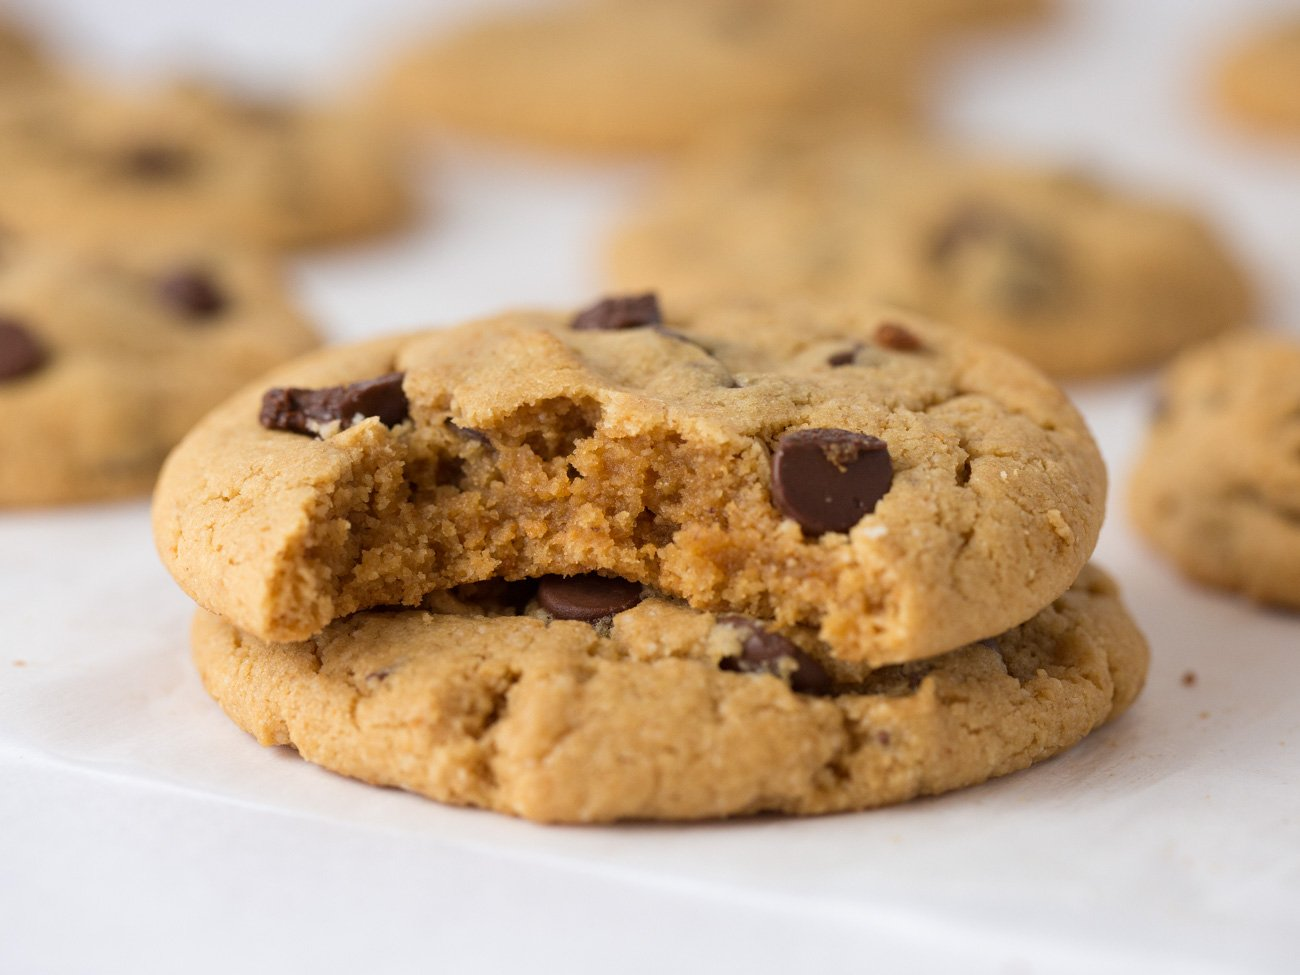 Chewy and Soft Gluten Free Peanut Butter Chocolate Chip Cookies